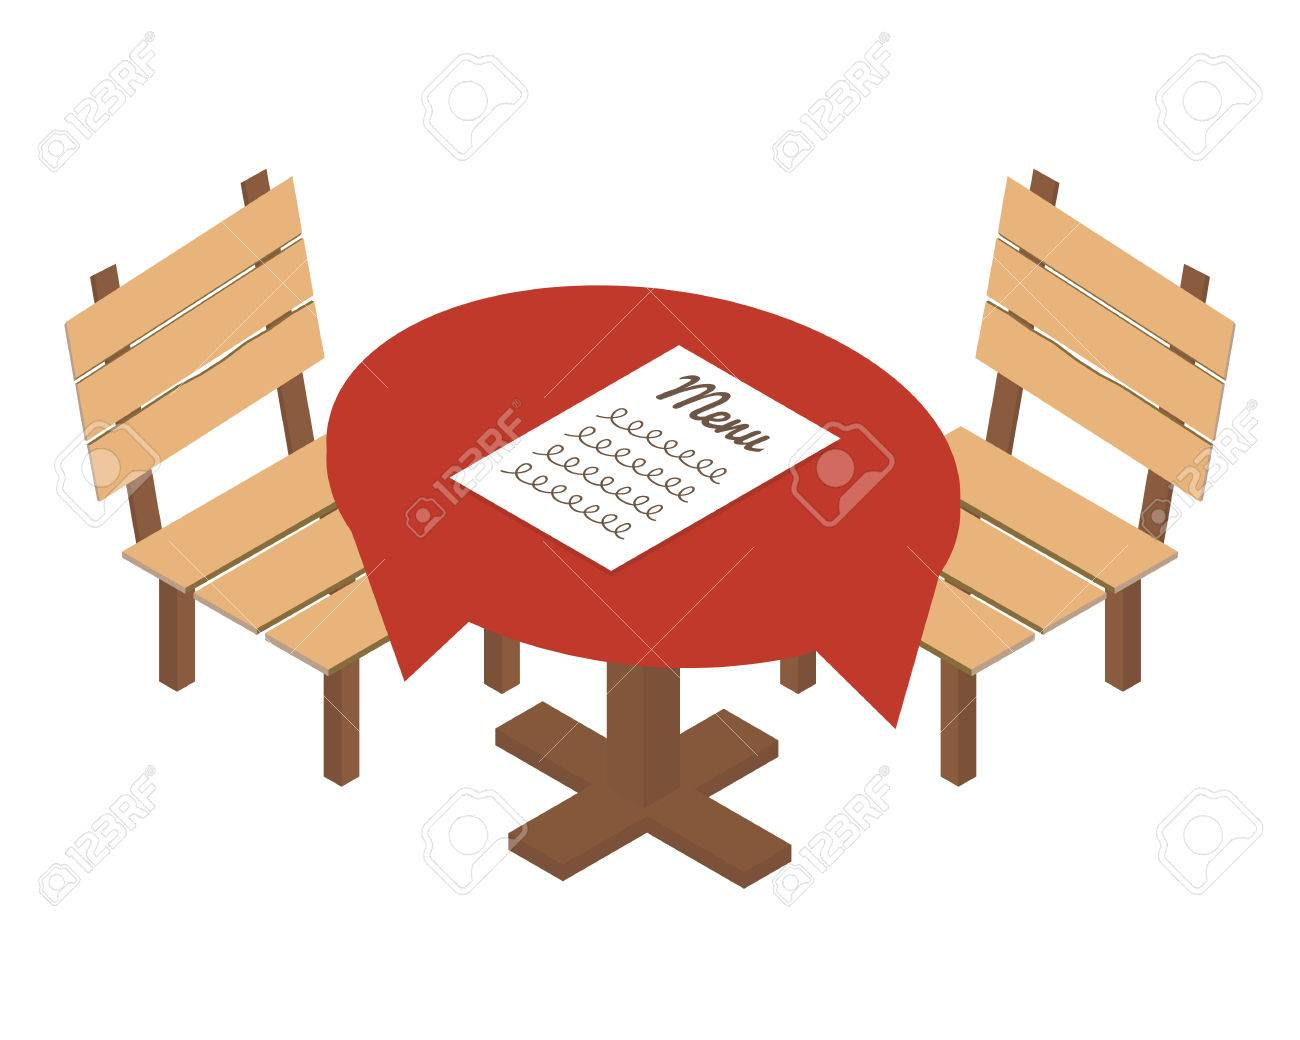 Restaurant tables and chairs clipart - Isometric Table In Cafe Or Restaurant Vector Icon Stock Vector 44013503